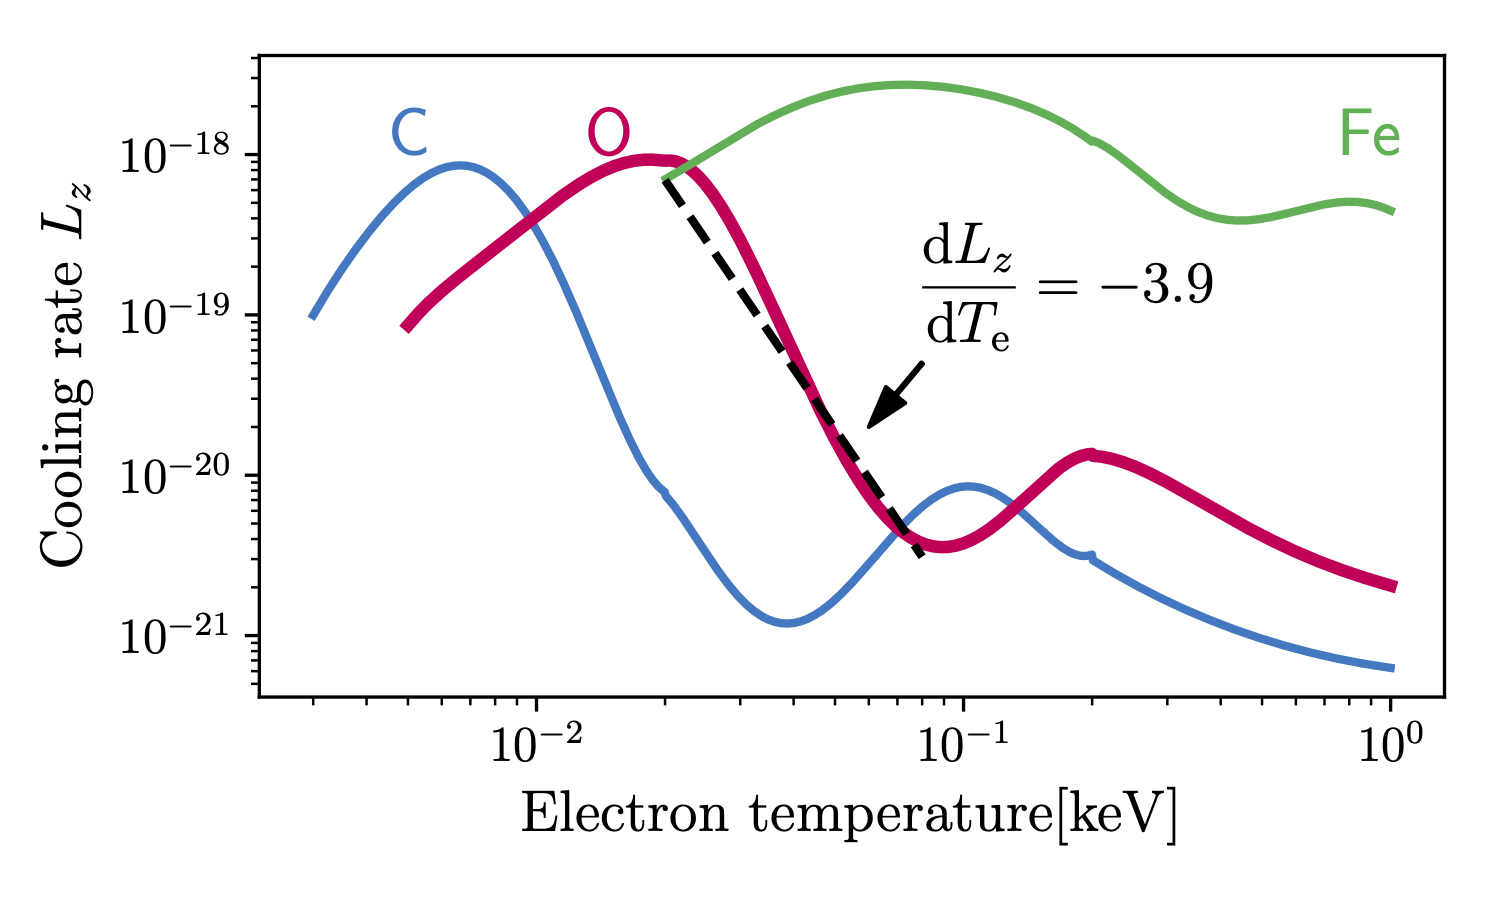 Cooling rate of C, O, and Fe against electron temperature. Black dashed lines mean $L_z\propto T_\mathrm{e}^{-3.9}$.